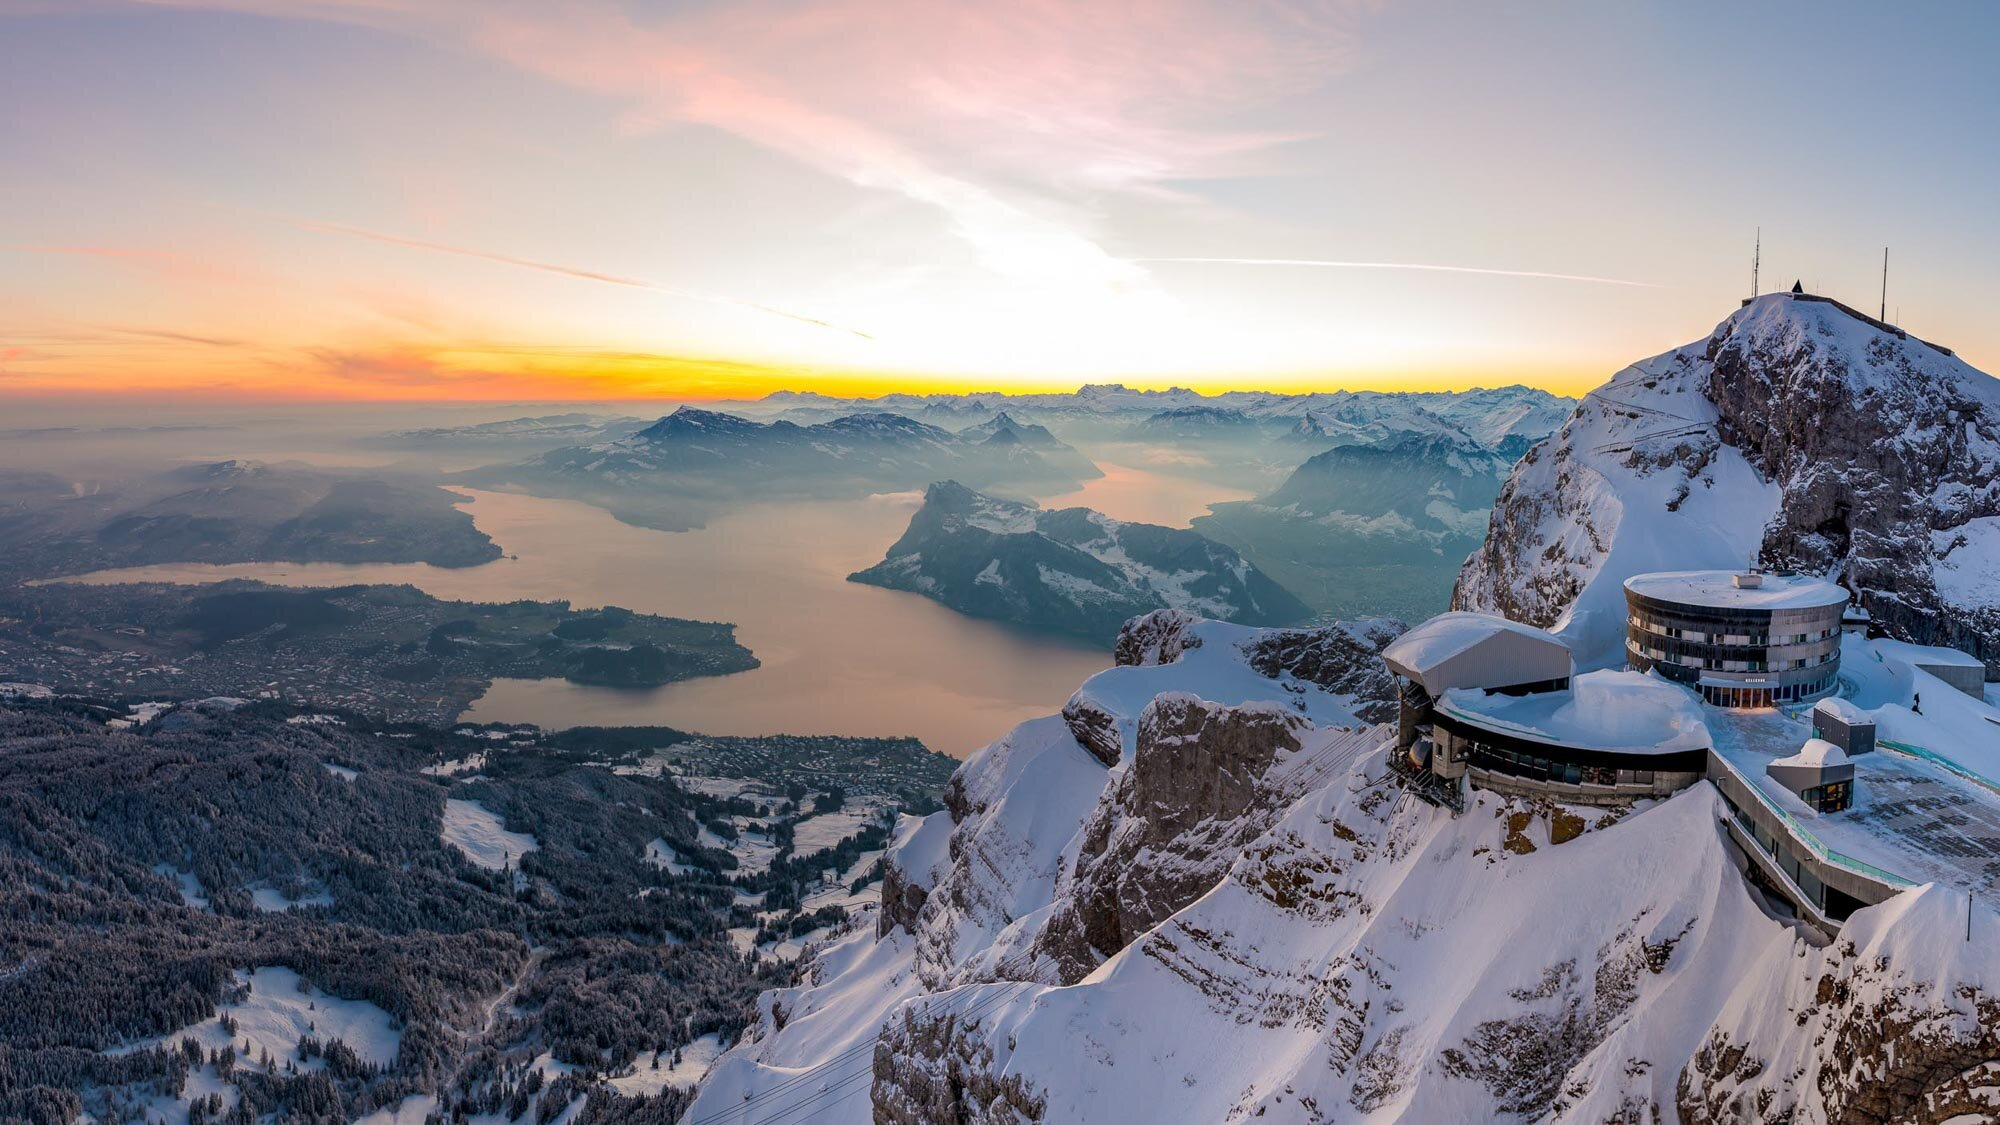 A sunrise on Pilatus Kulm with a view of Lake Lucerne and the Hotel Bellevue. Copyright by Pilatus-Bahnen